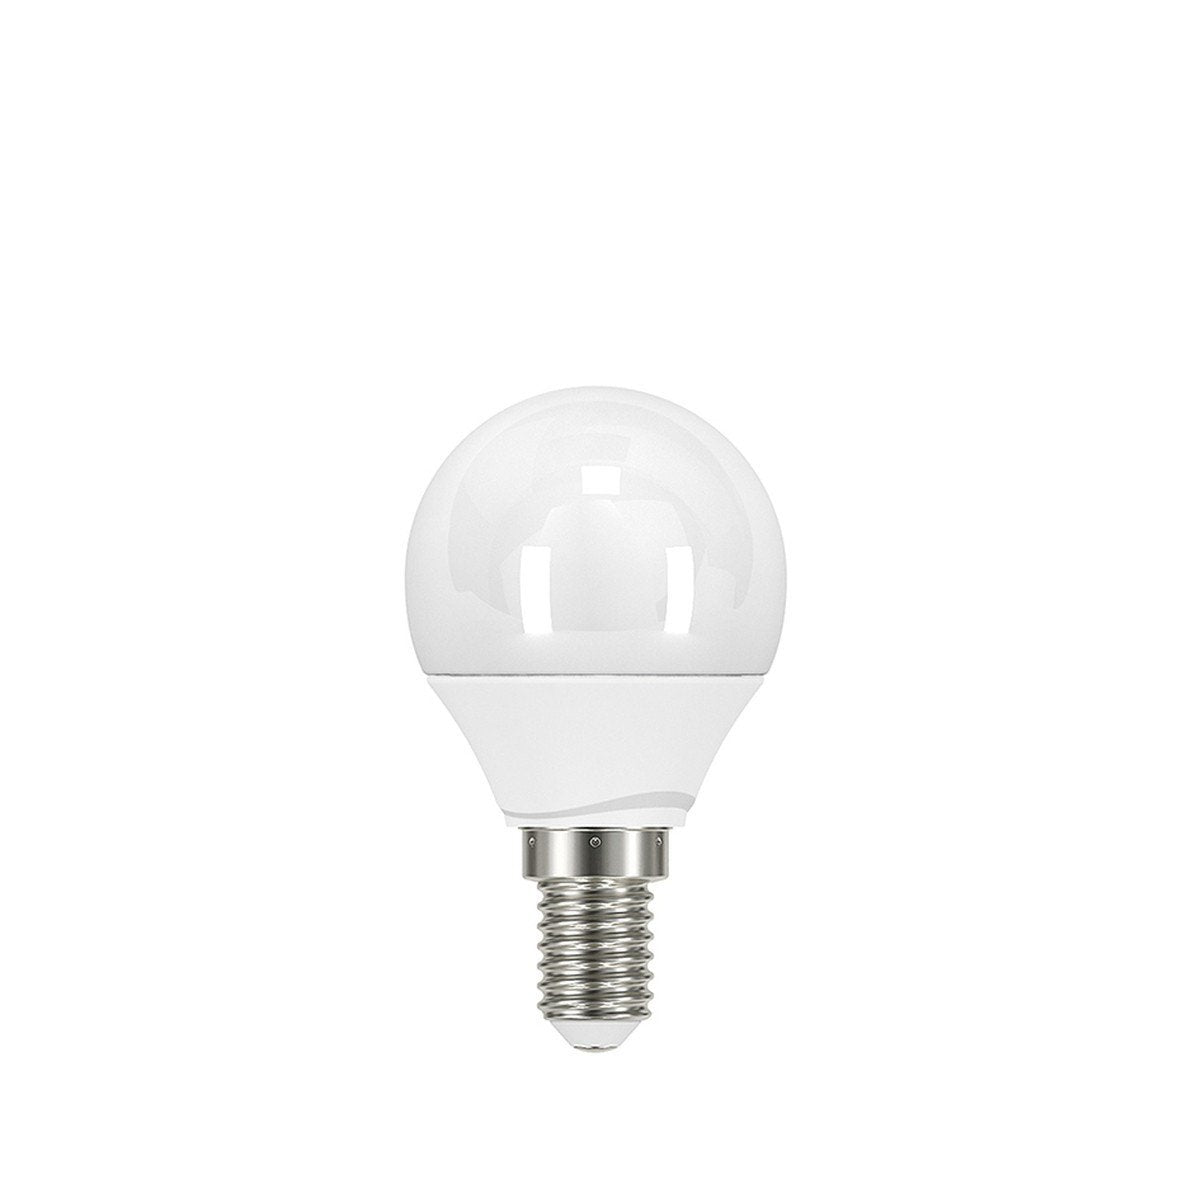 Golf Ball Lamp 3.4W E14 LED - London Lighting - 1